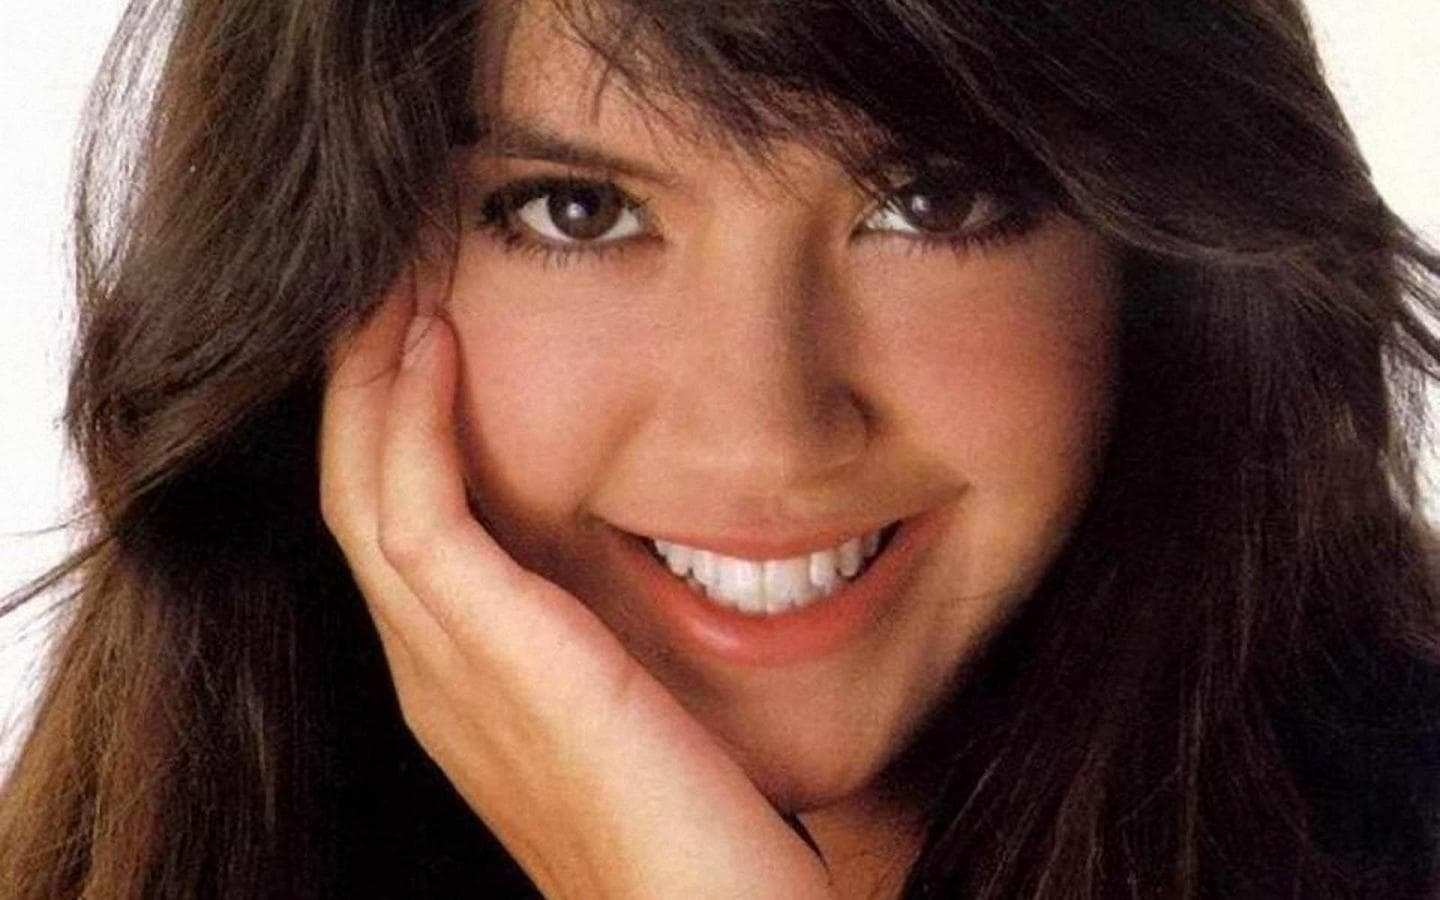 1440x900 - Phoebe Cates Wallpapers 11